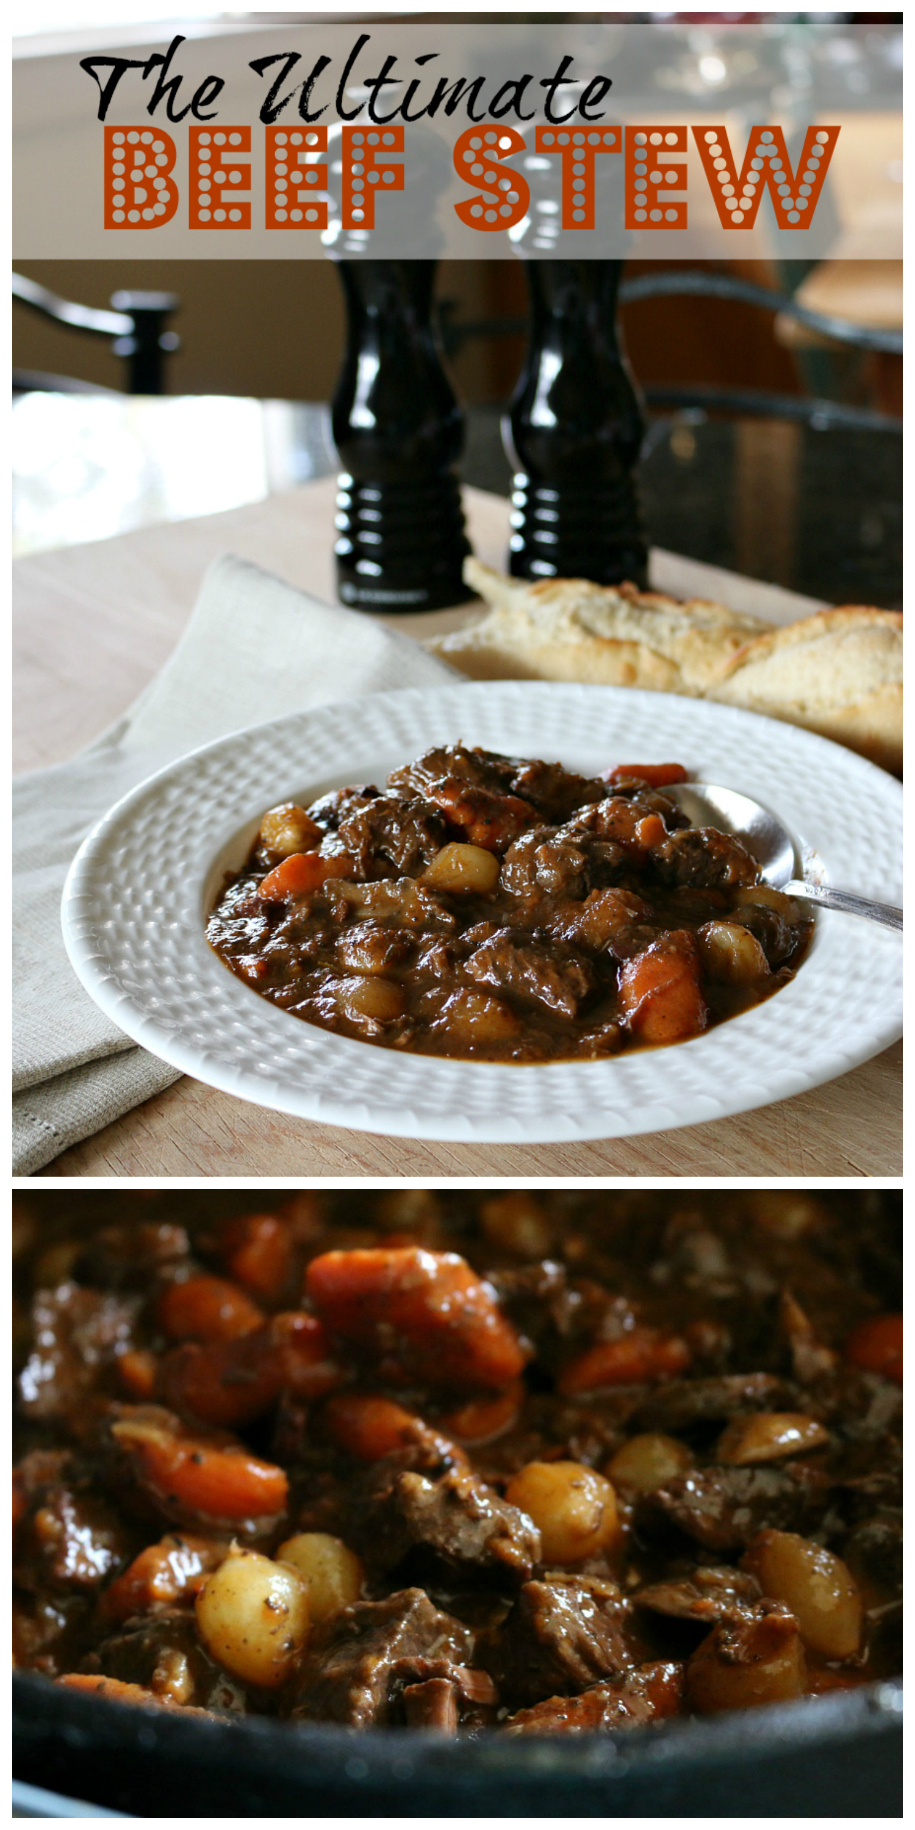 The Ultimate Beef Stew Recipe CeceliasGoodStuff.com | Good Food for Good People